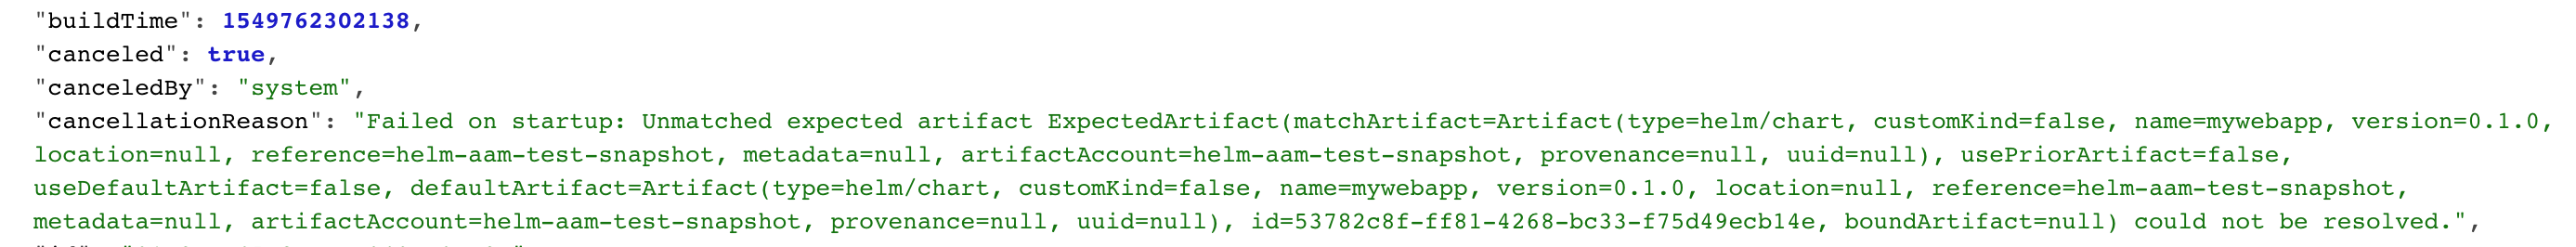 Add ability to get a list of helm charts artifacts from